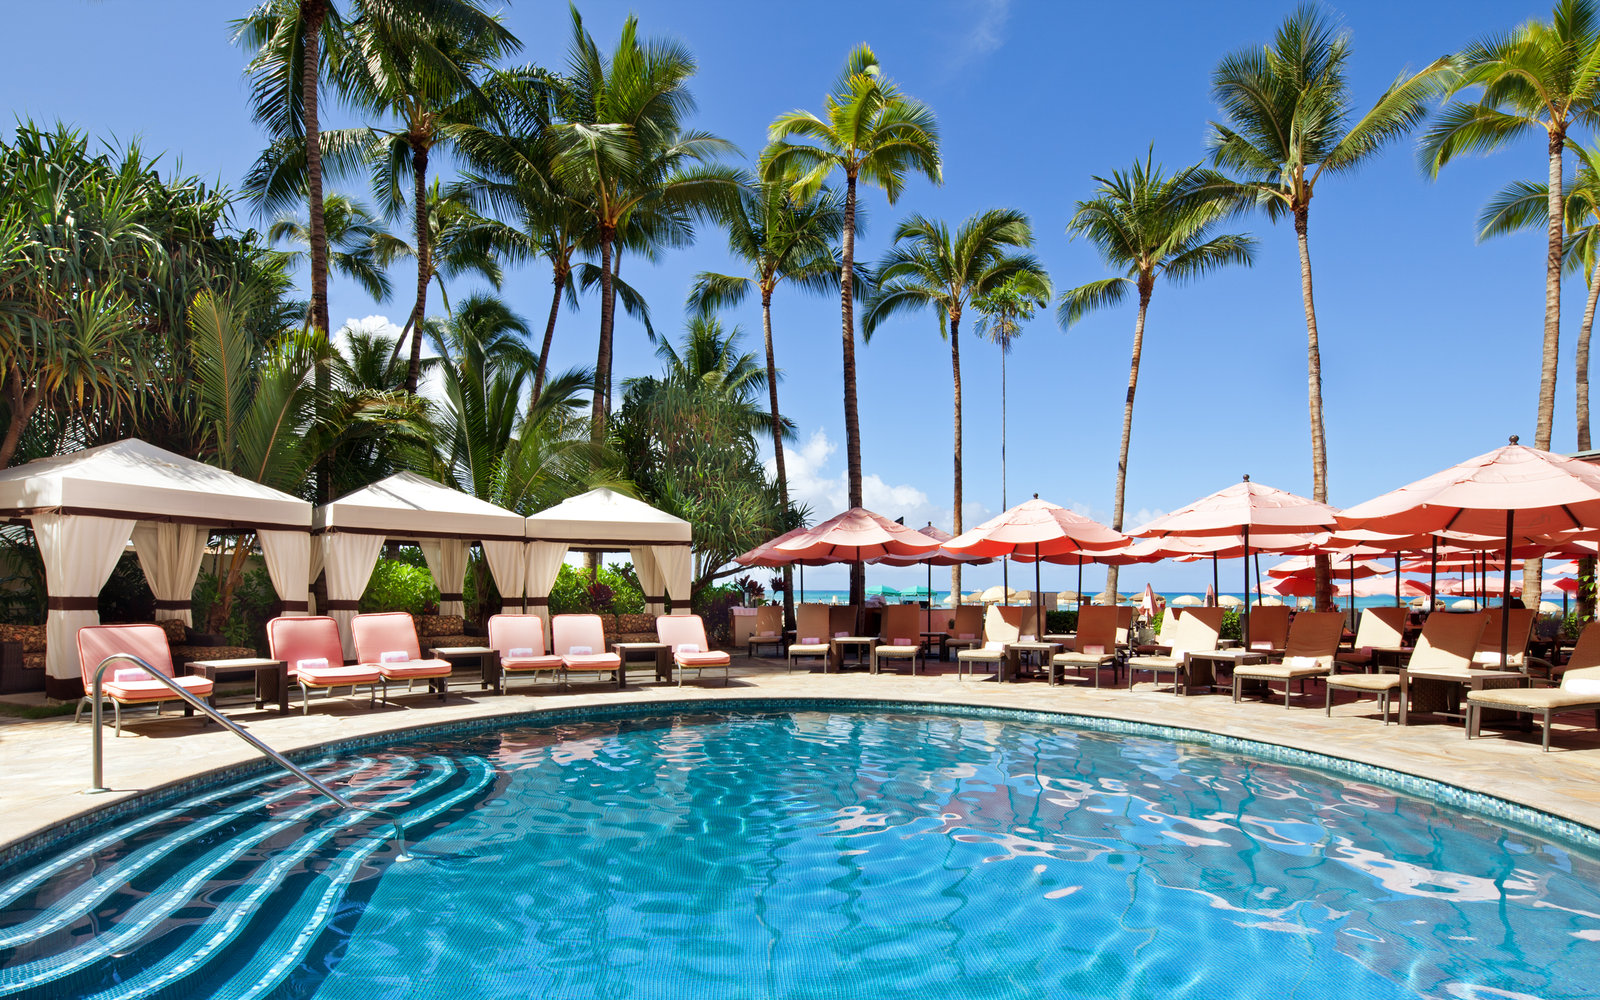 The Best Resort Hotels In The Hawaii